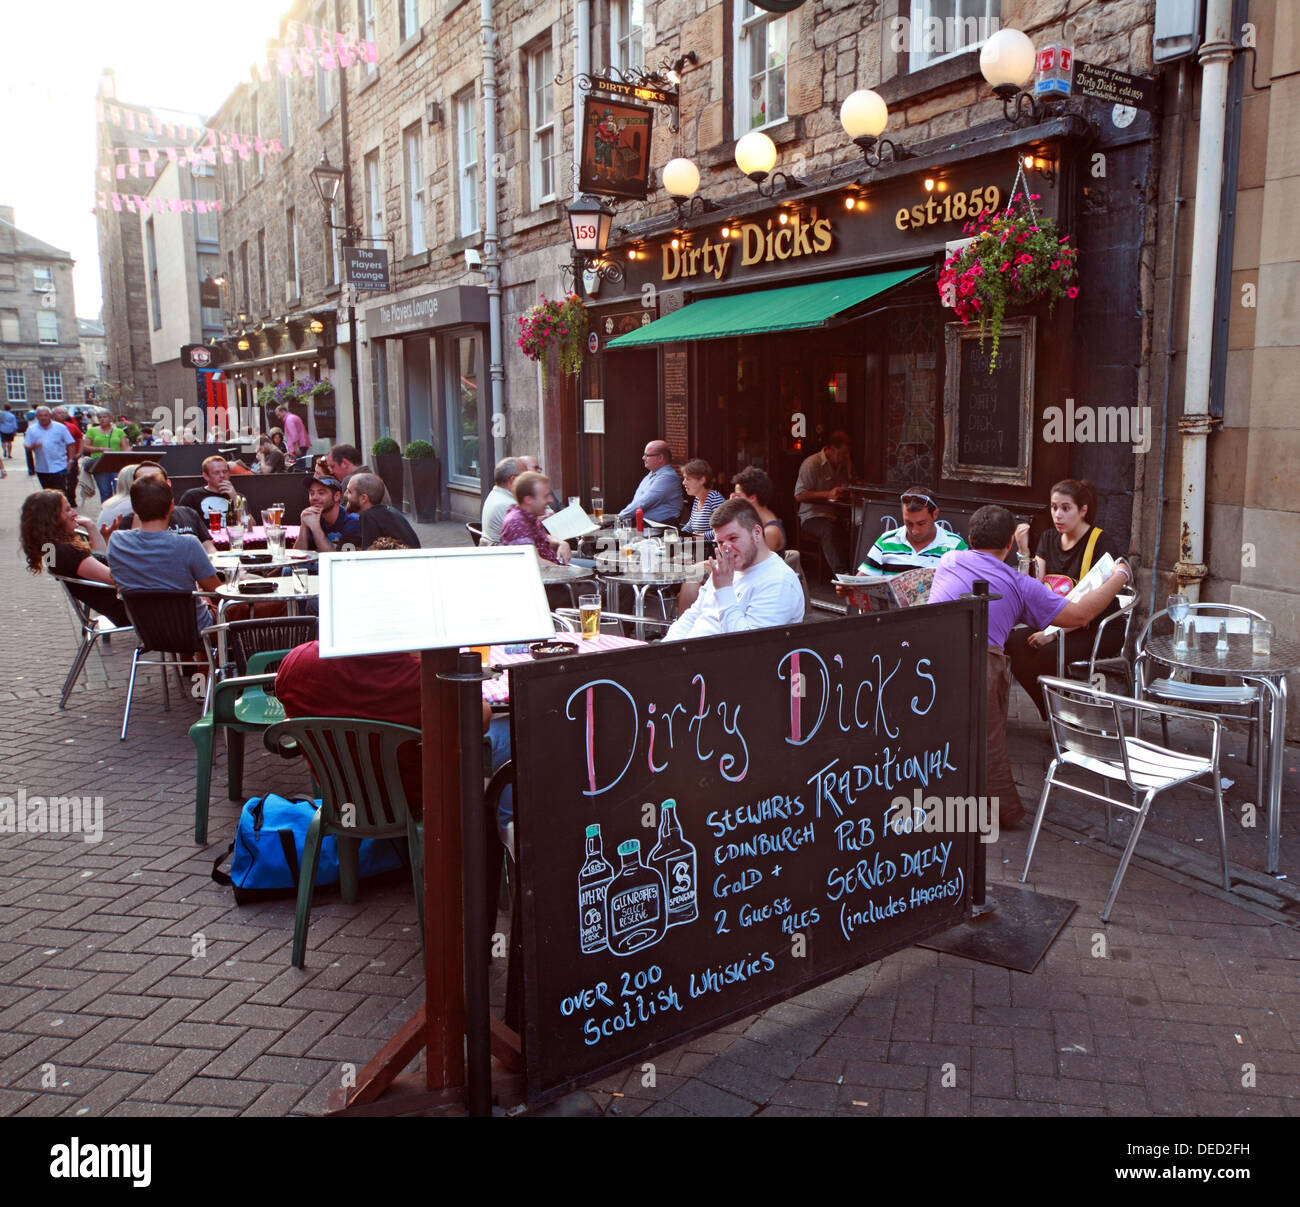 Dirty Dicks Pub Rose St Edinburgh New Town Scotland - Stock Image